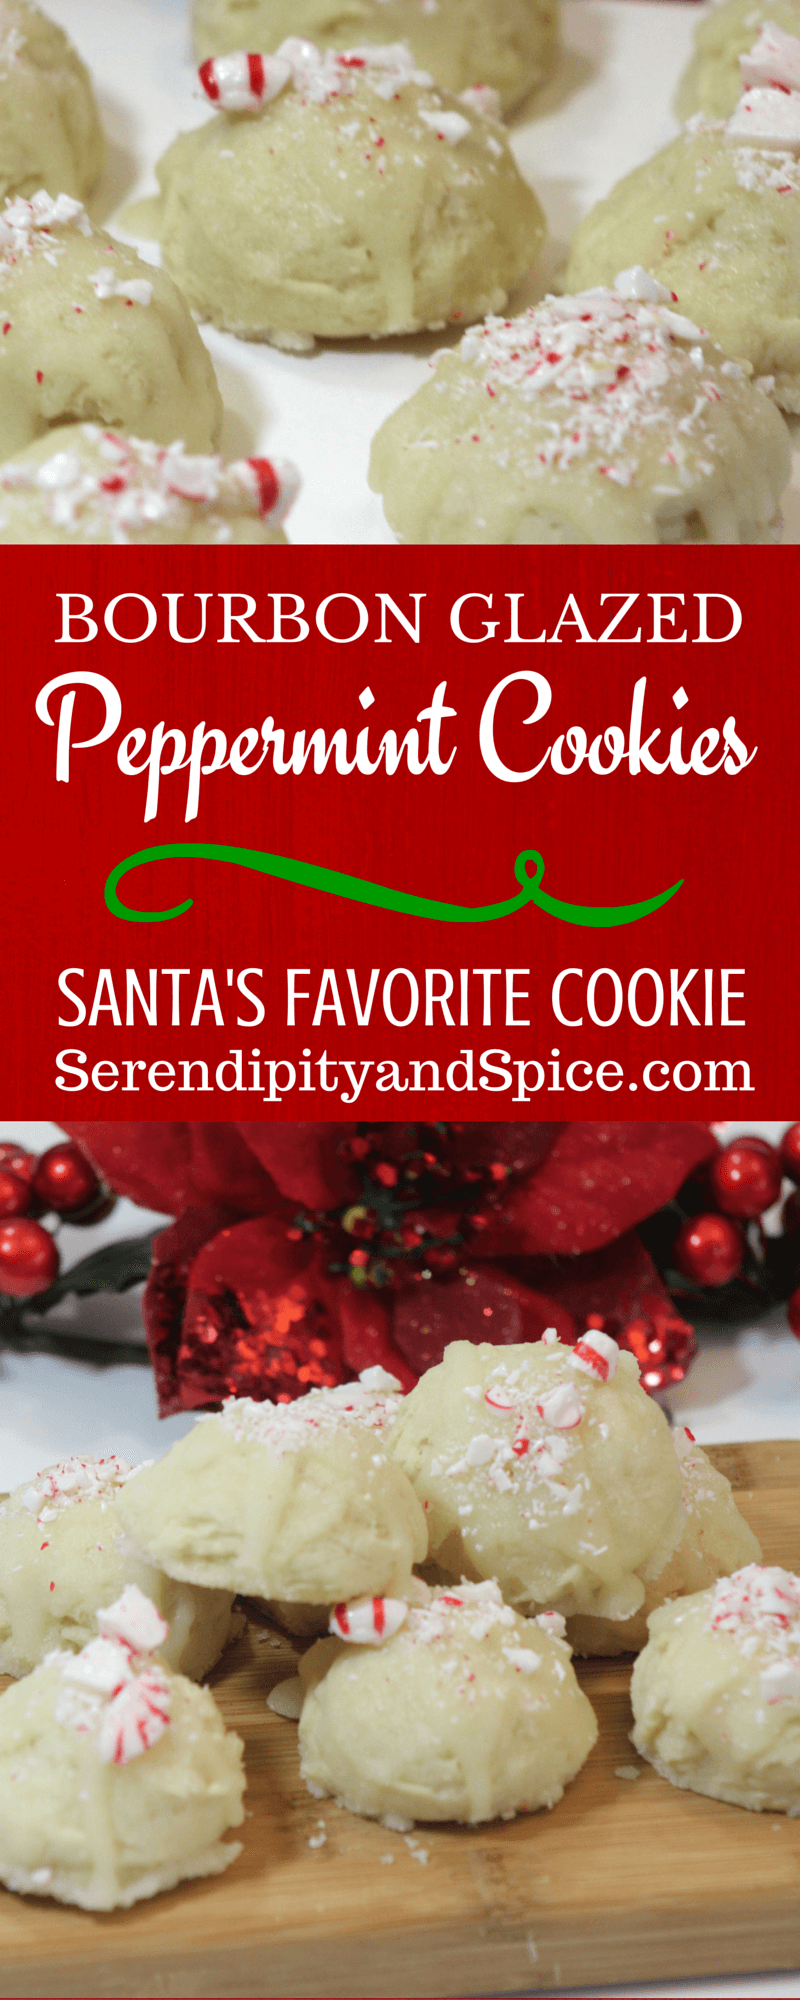 Bourbon Glazed Peppermint Cookies - PIN THIS ONE